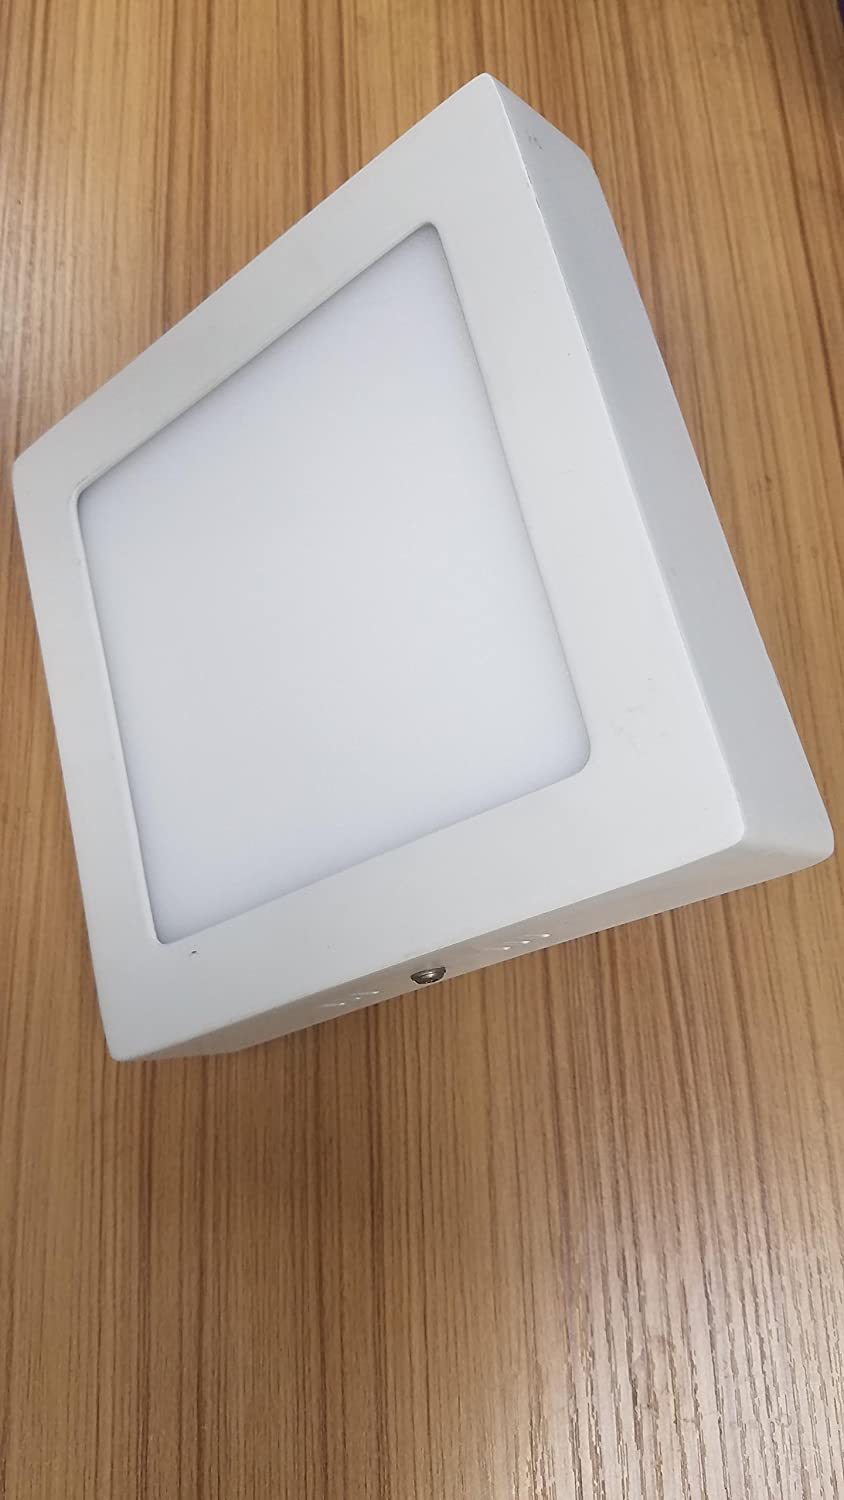 Cool White 4100/°K Square New Product with Special Price! LED Panel Light 12W Product Size 6.69 x 6.69 x 1.38 h AC95-240V 50//60Hz